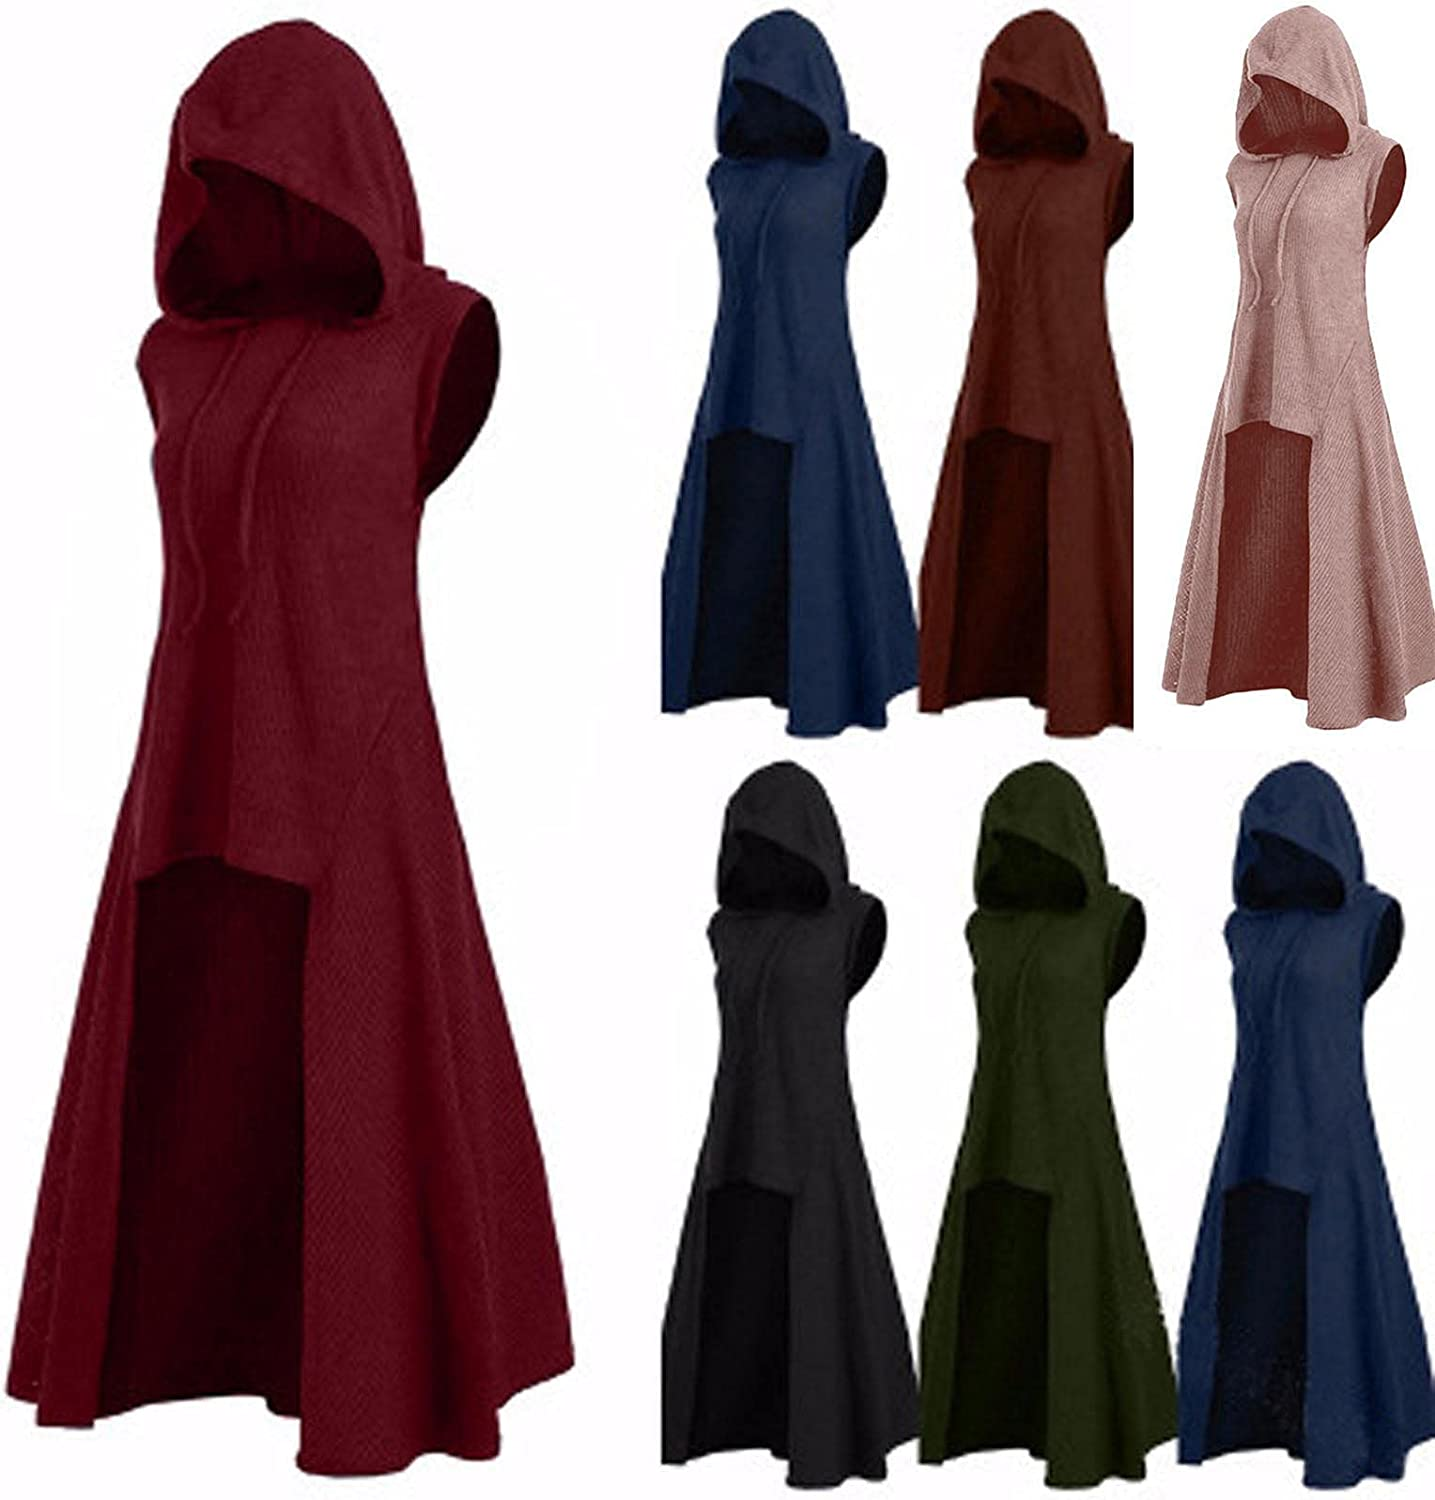 TARIENDY Vintage Dress Sweater for Women Hooded Sleeveless Blouse Solid Color Flowy Tunic Tops High Low Vest Pullover